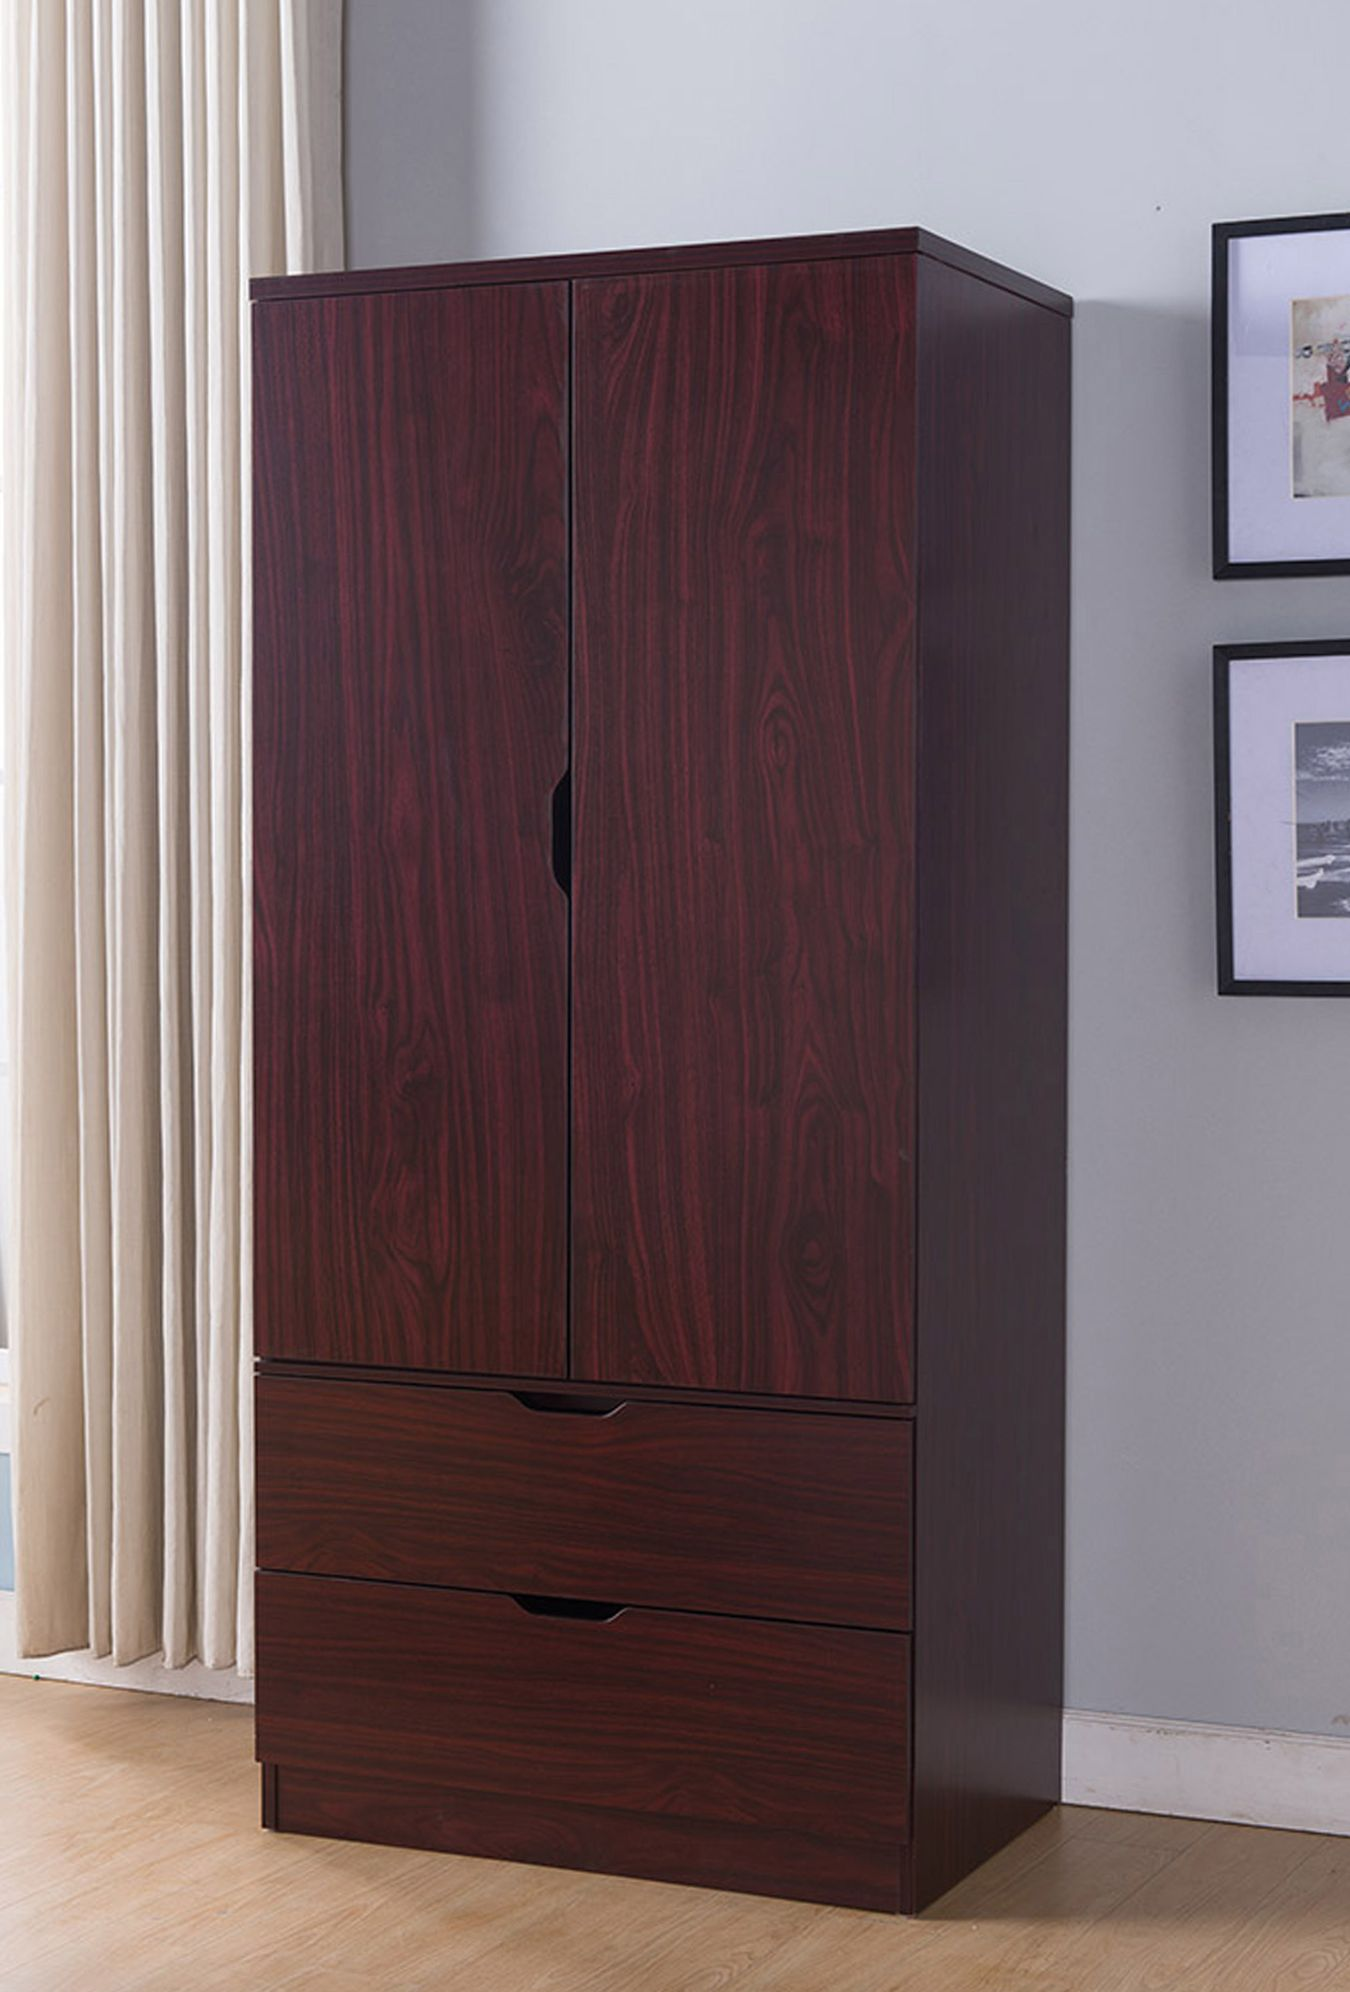 K16010 Wardrobe Can Accommodate Any Bedroom Or Any Space That Requires More Storage You Will Wooden Storage Cabinet Wooden Storage Storage Closet Organization